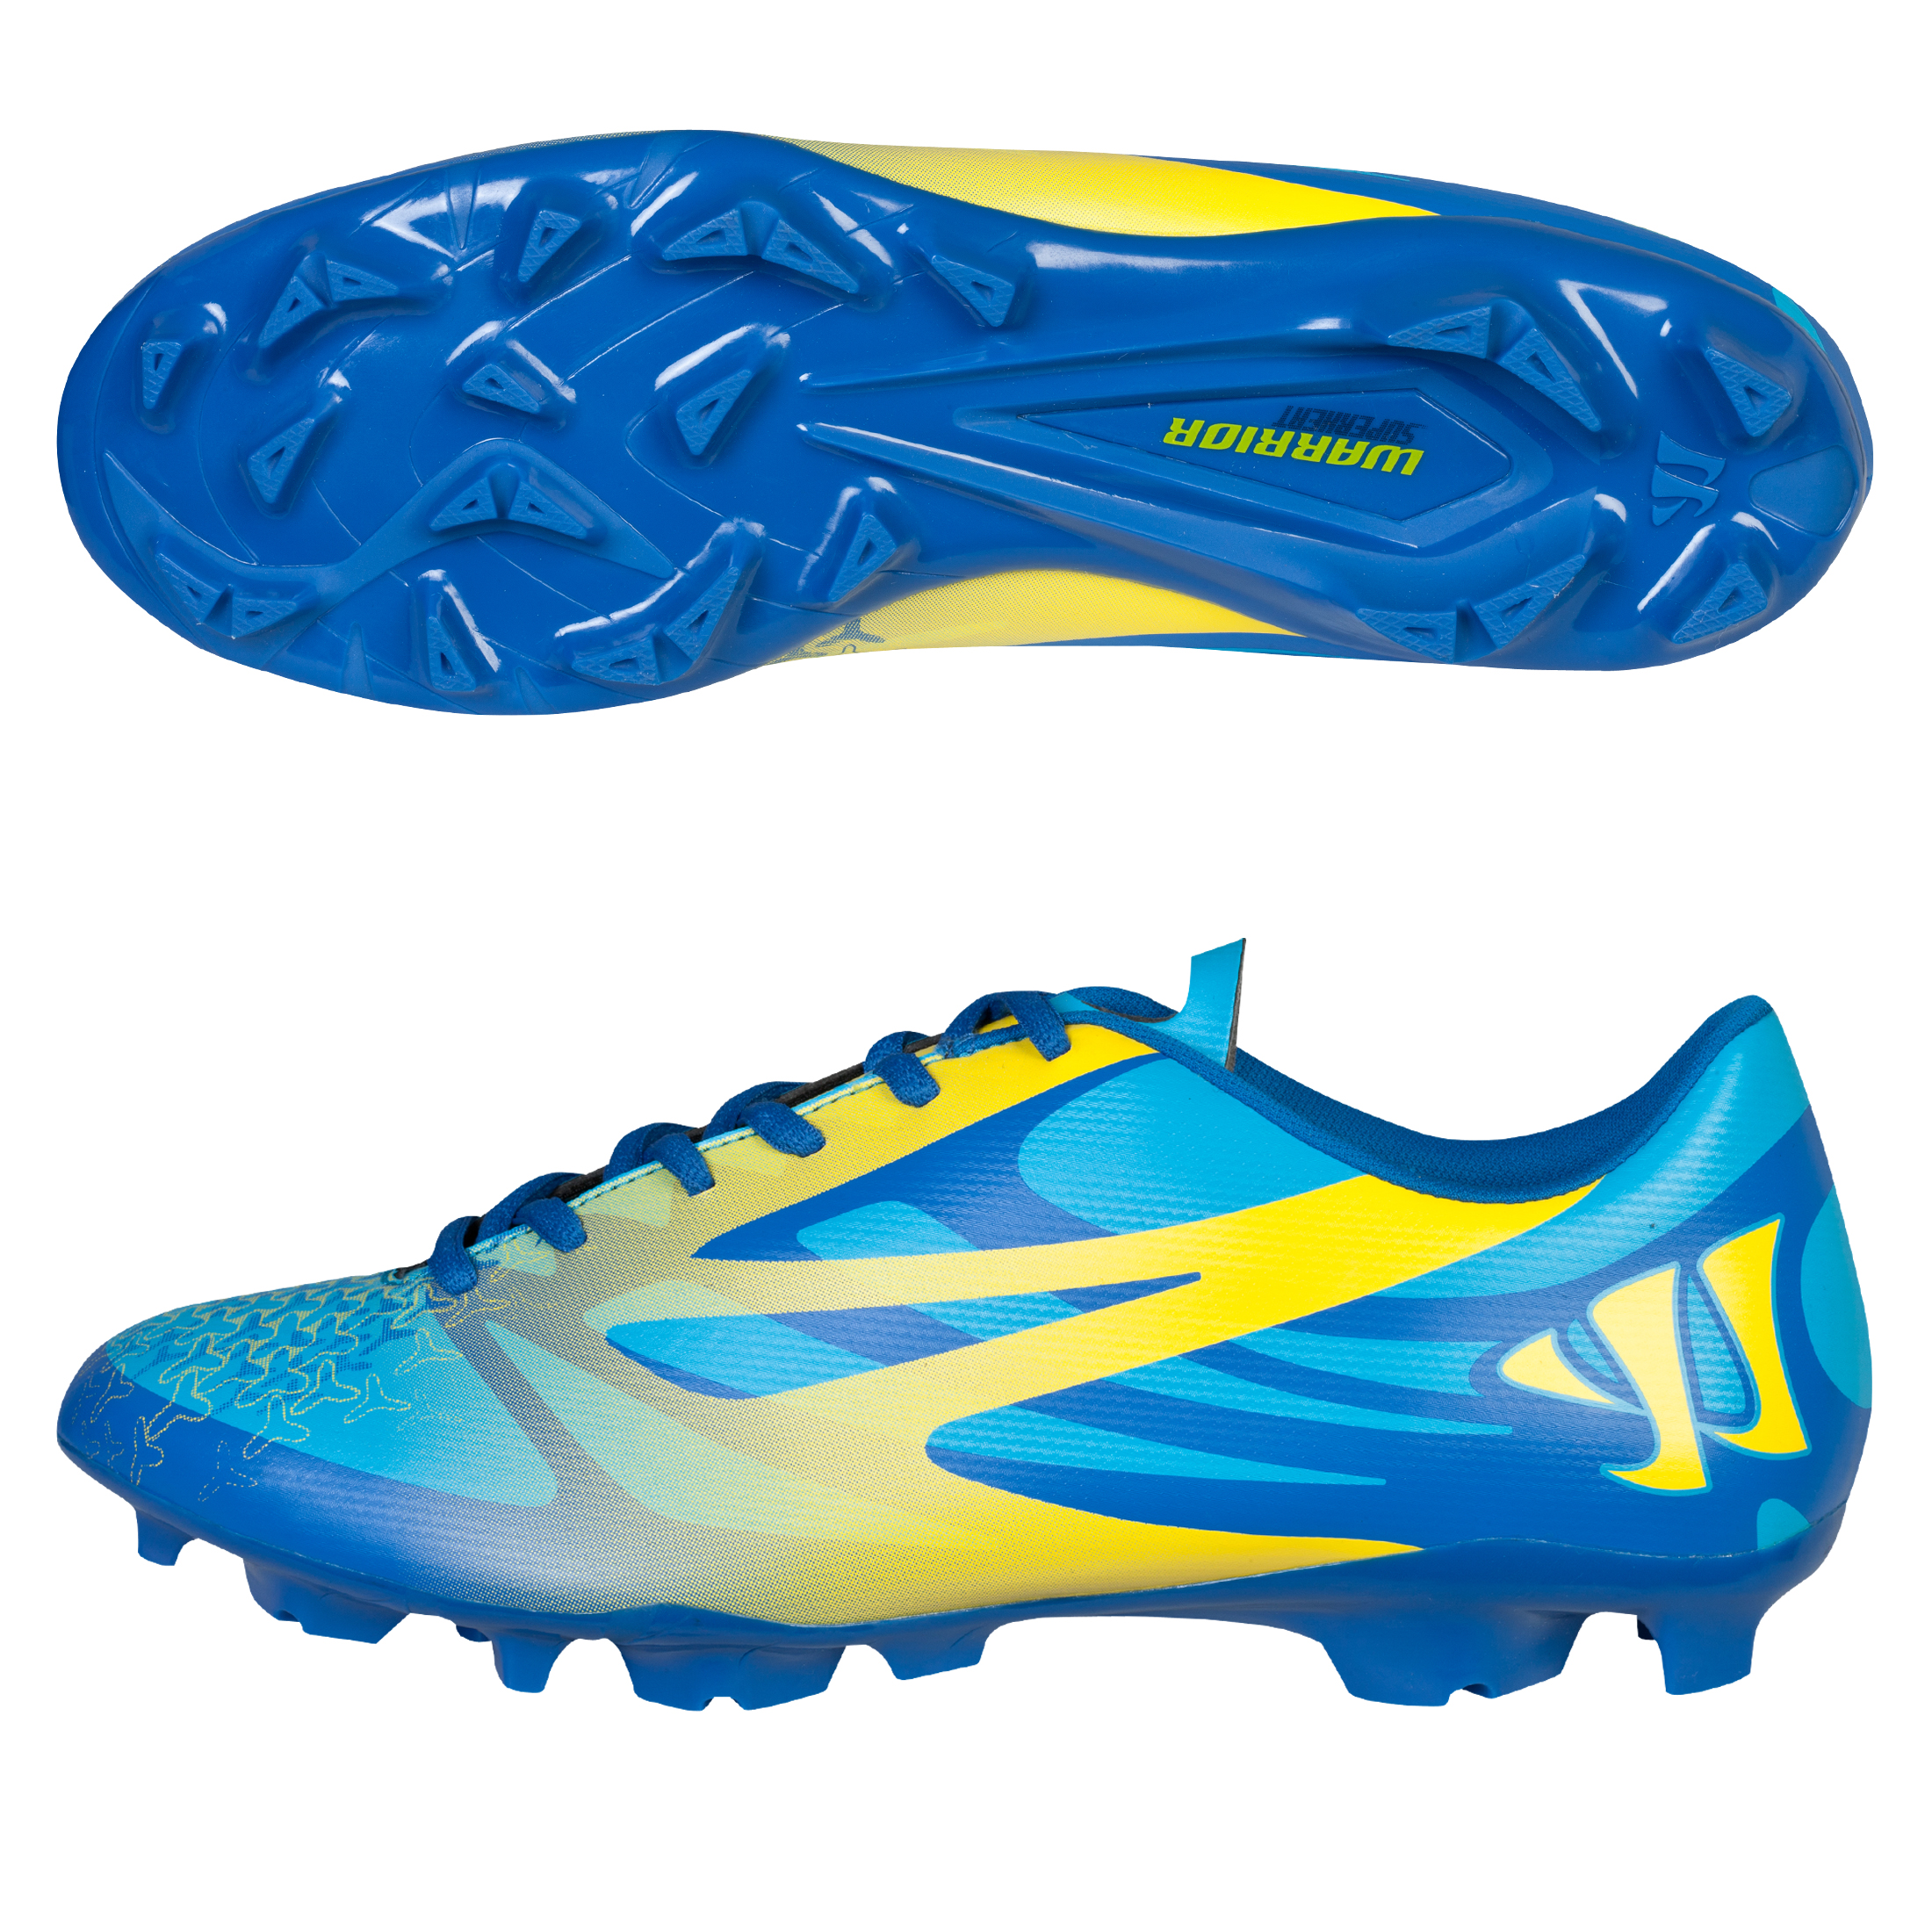 Warrior Superheat Combat Firm Ground Football Boots Blue